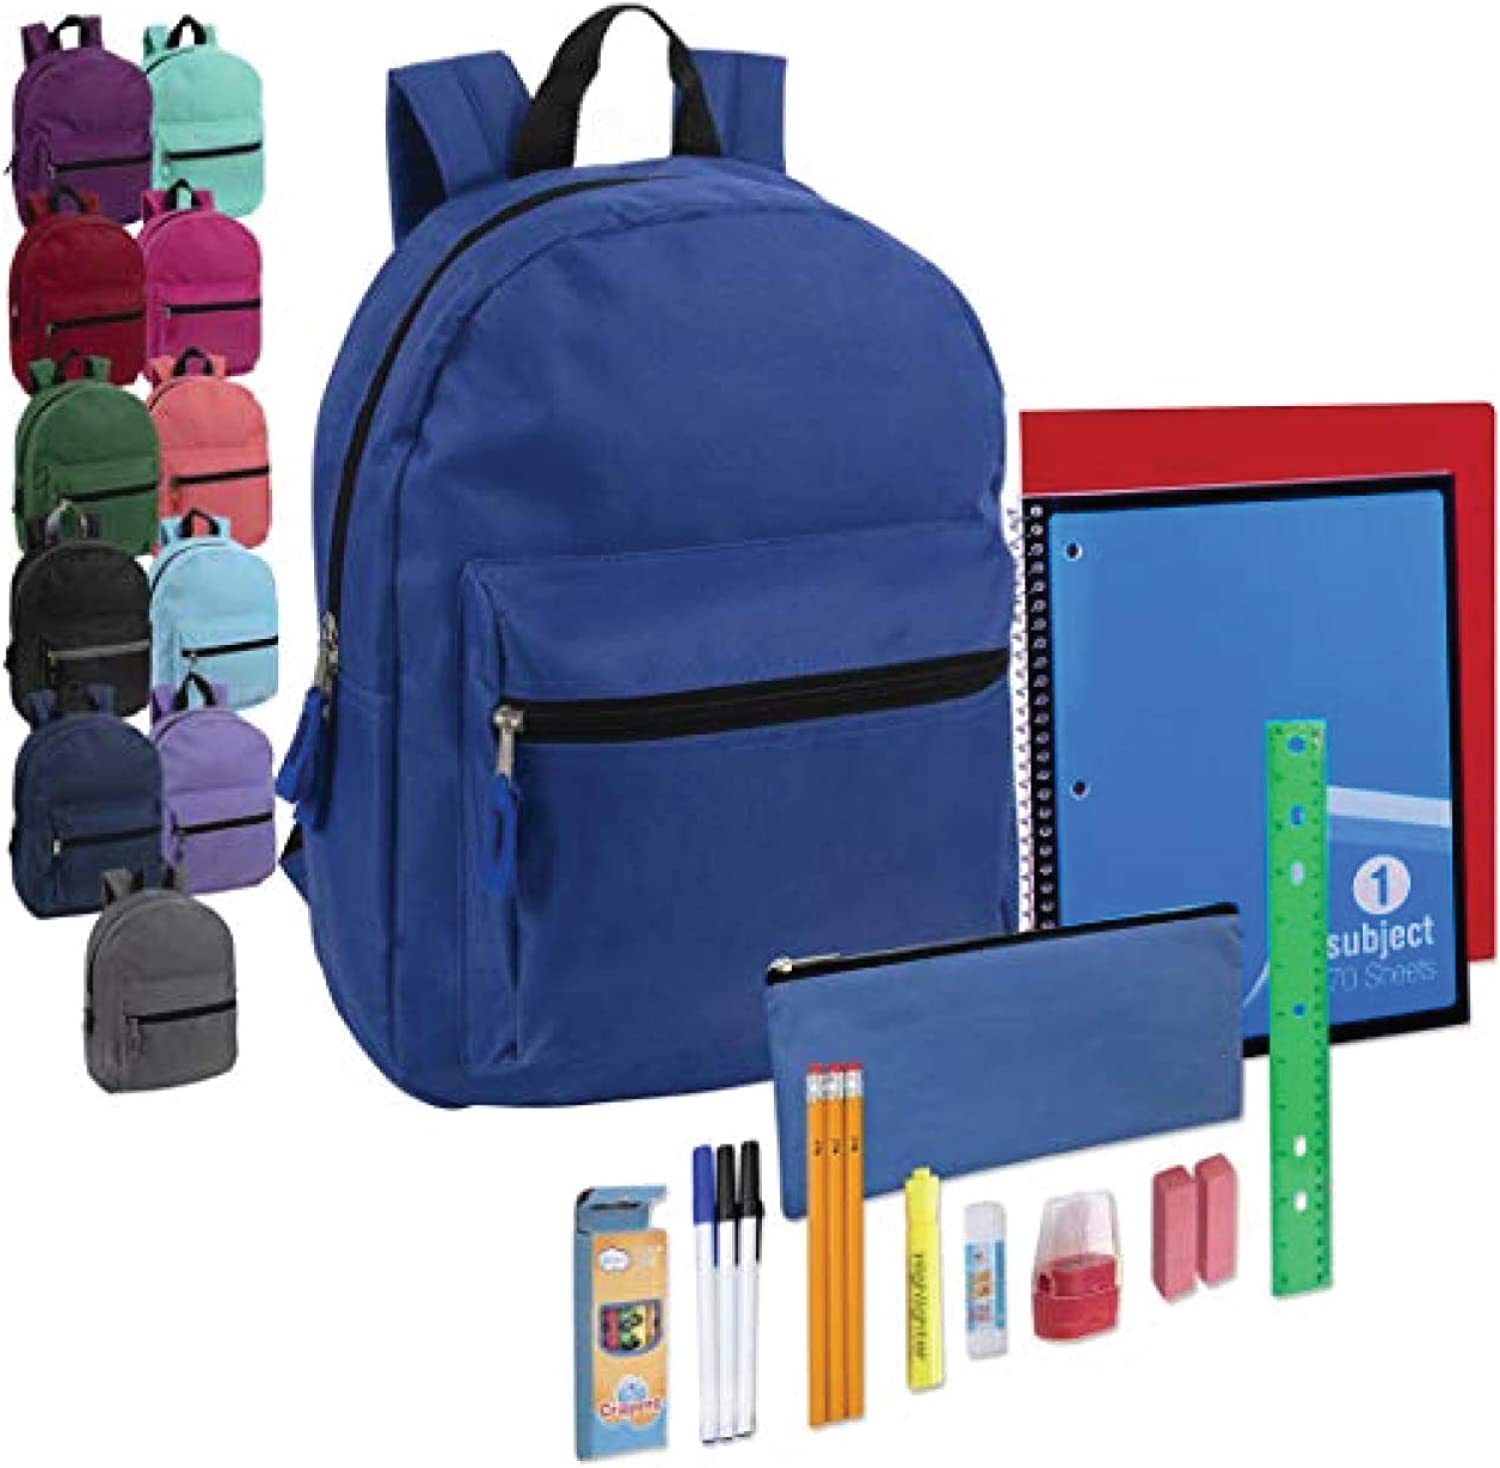 20 Piece Kits in Bulk Bundles 24 Pack Wholesale15 Inch Bulk Backpacks for Kids with School Supplies